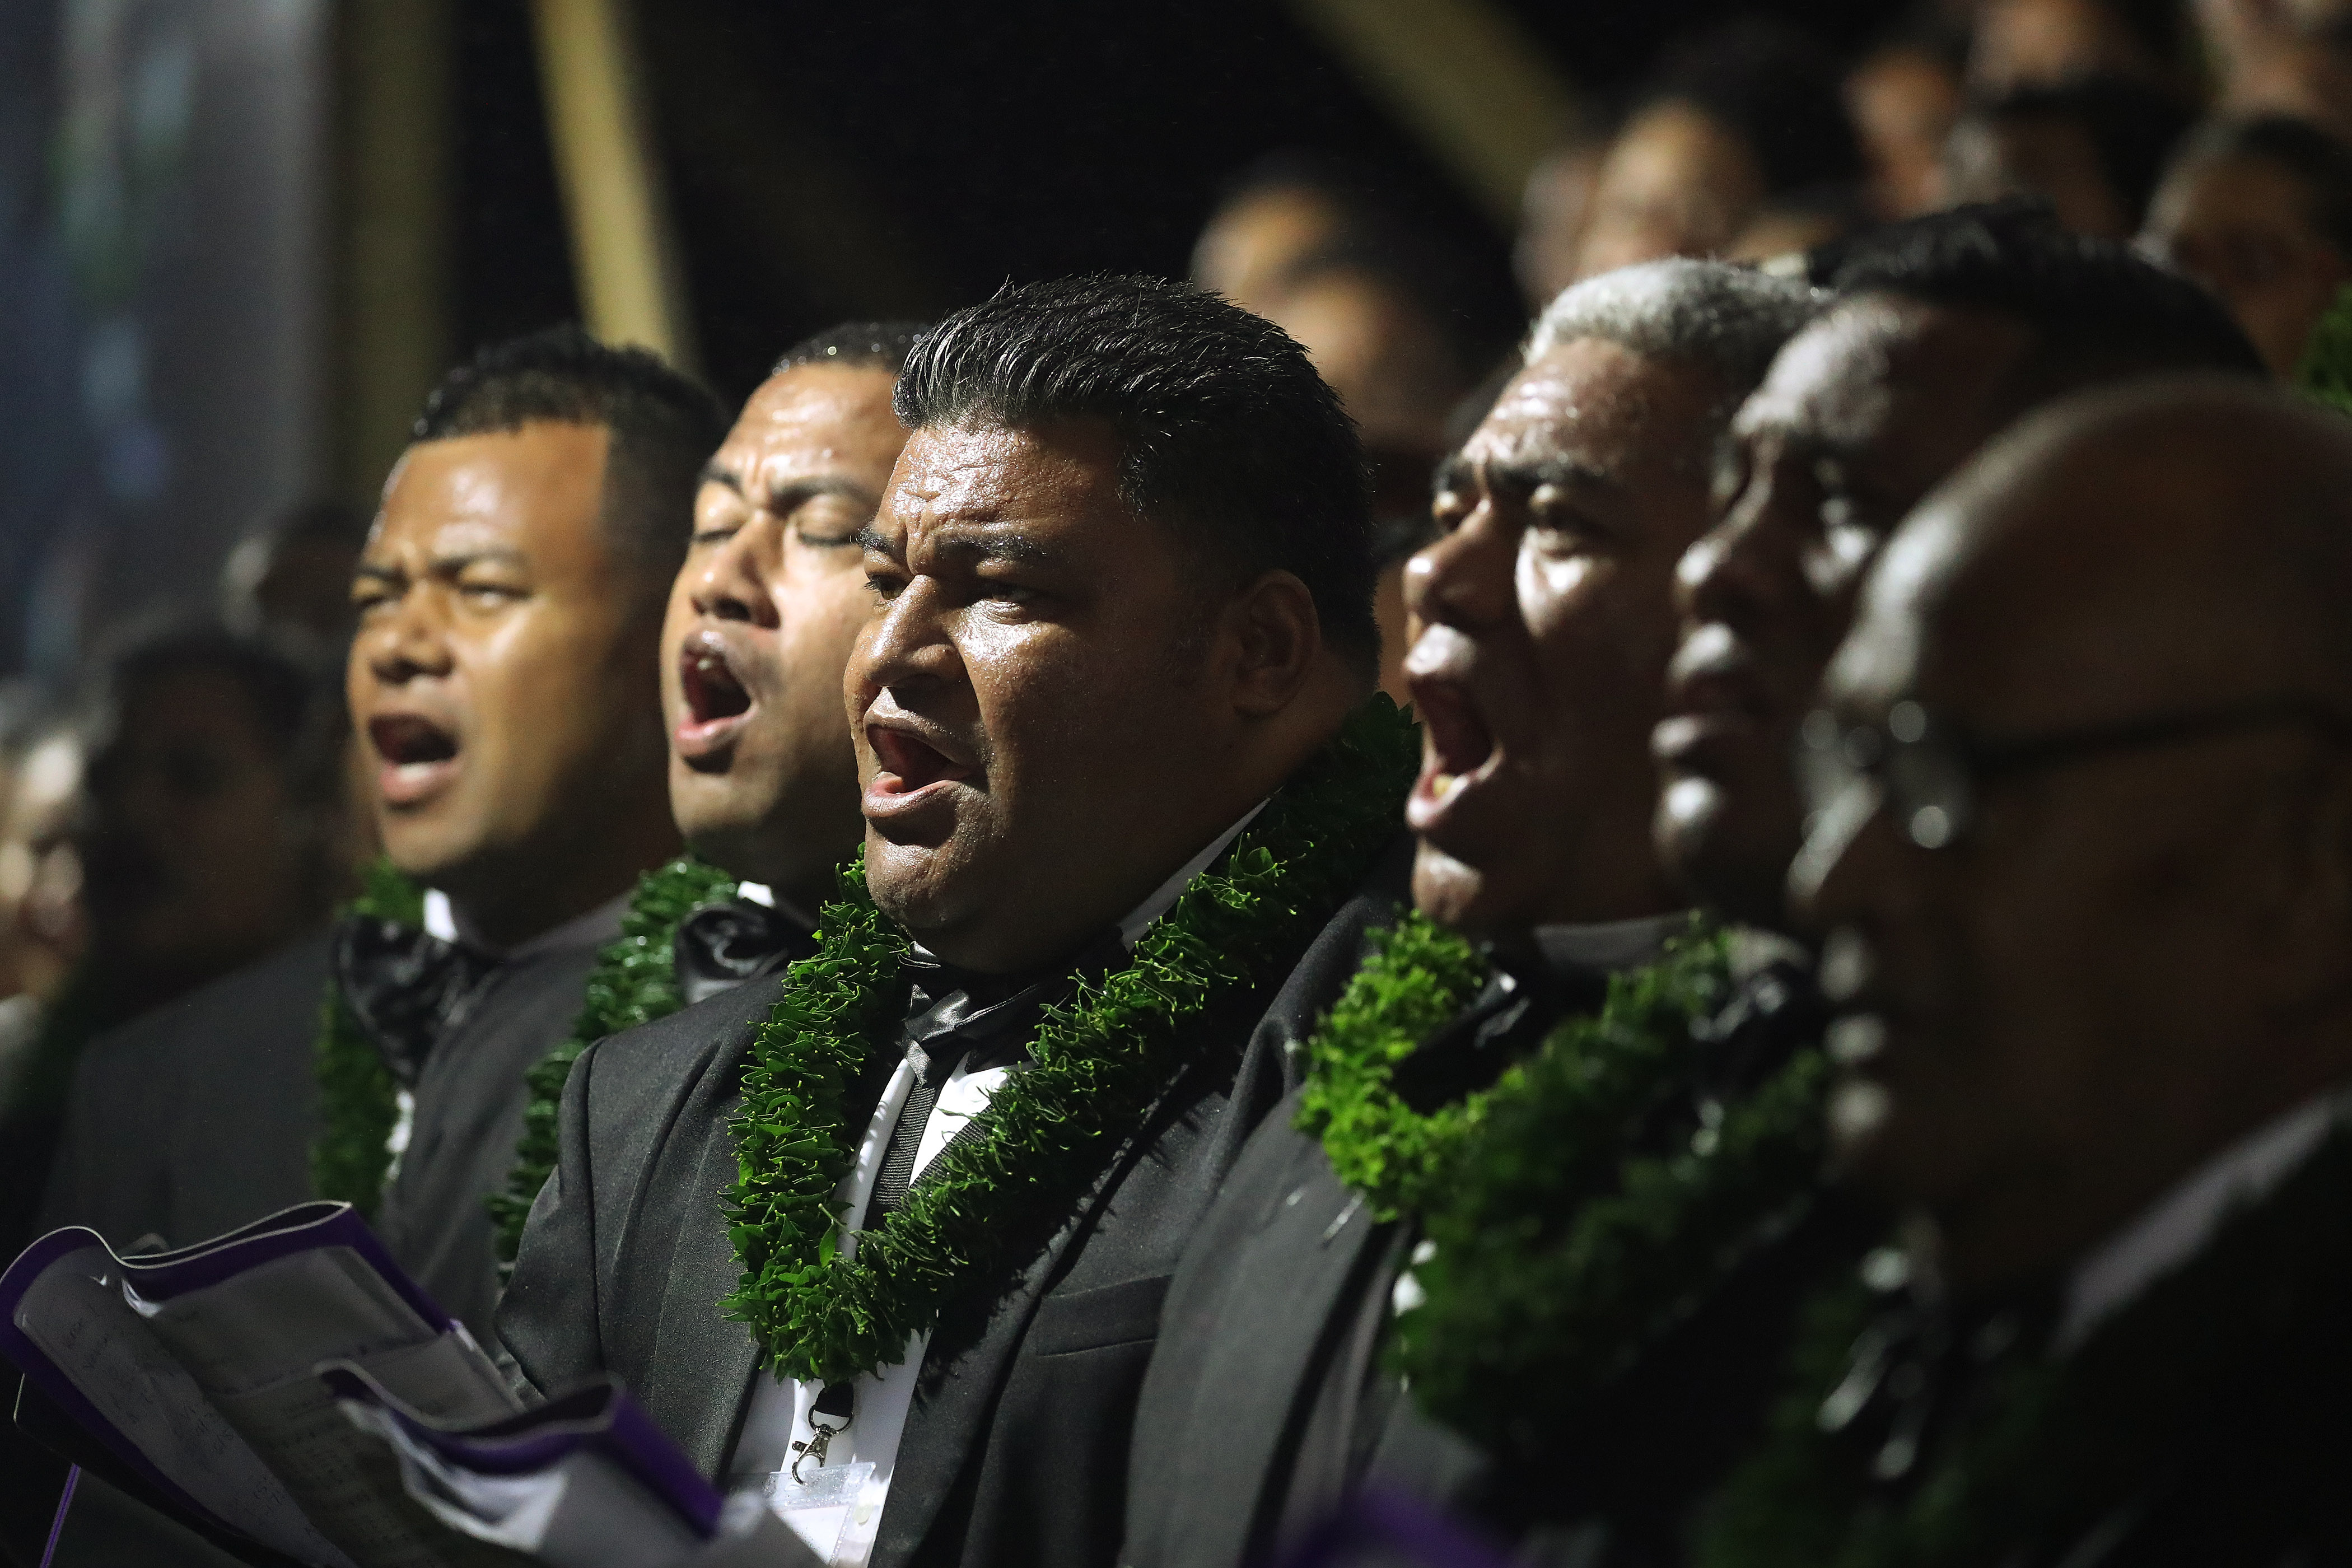 A choir sings during a devotional in Nuku'alofa, Tonga, on May 23, 2019.